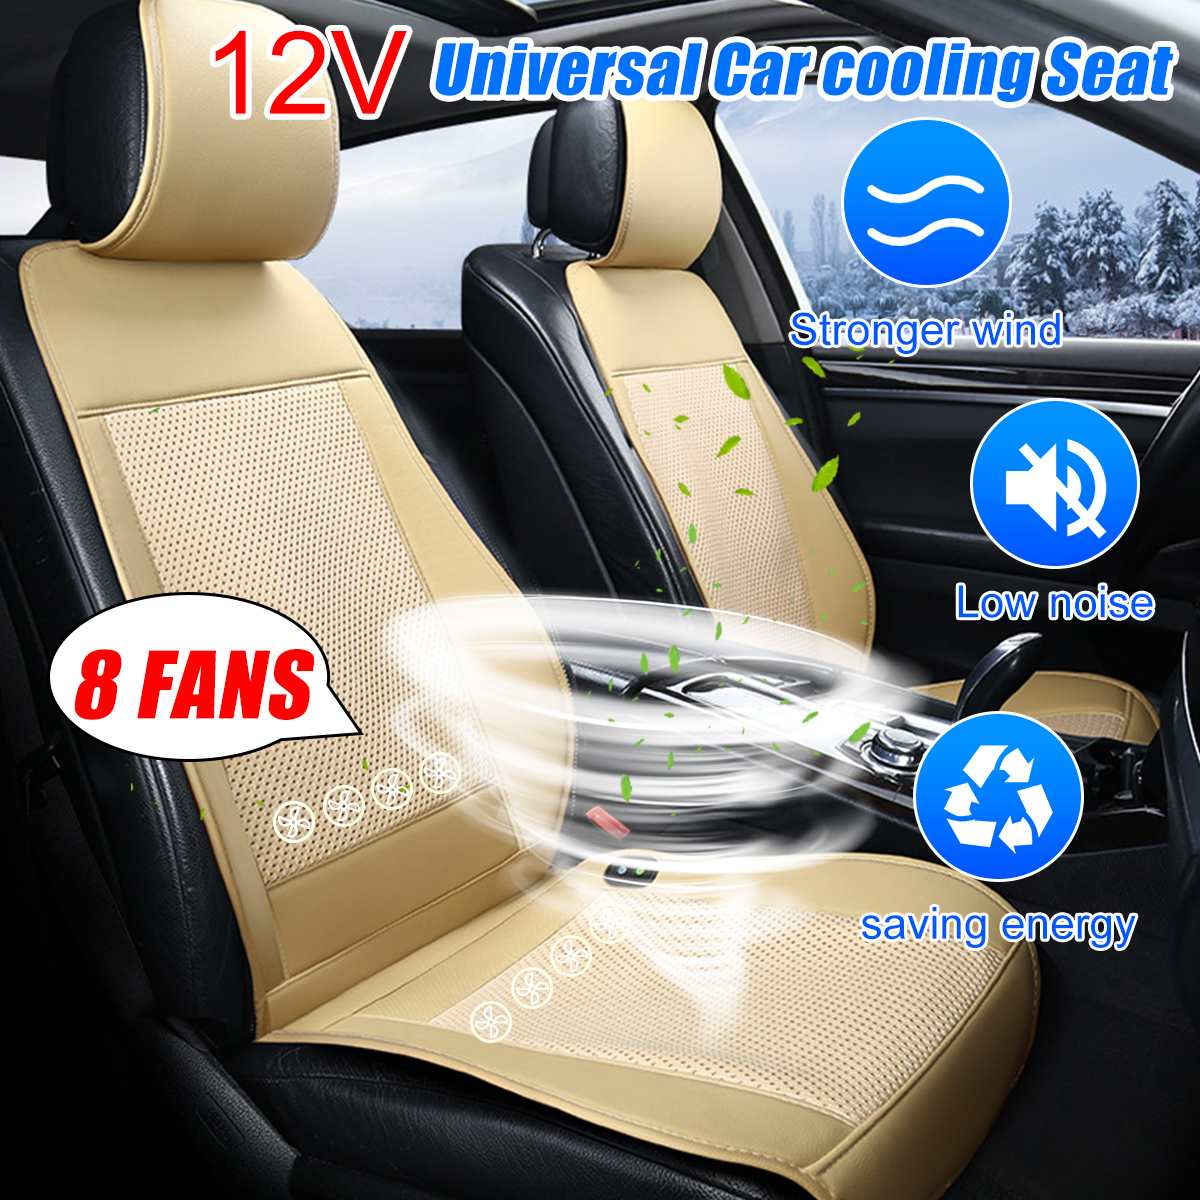 Cooler-Pad Cushion-Covers Seat Conditioned Cooling Air-Ventilated 3 Fan 12V Built-In-Fan title=